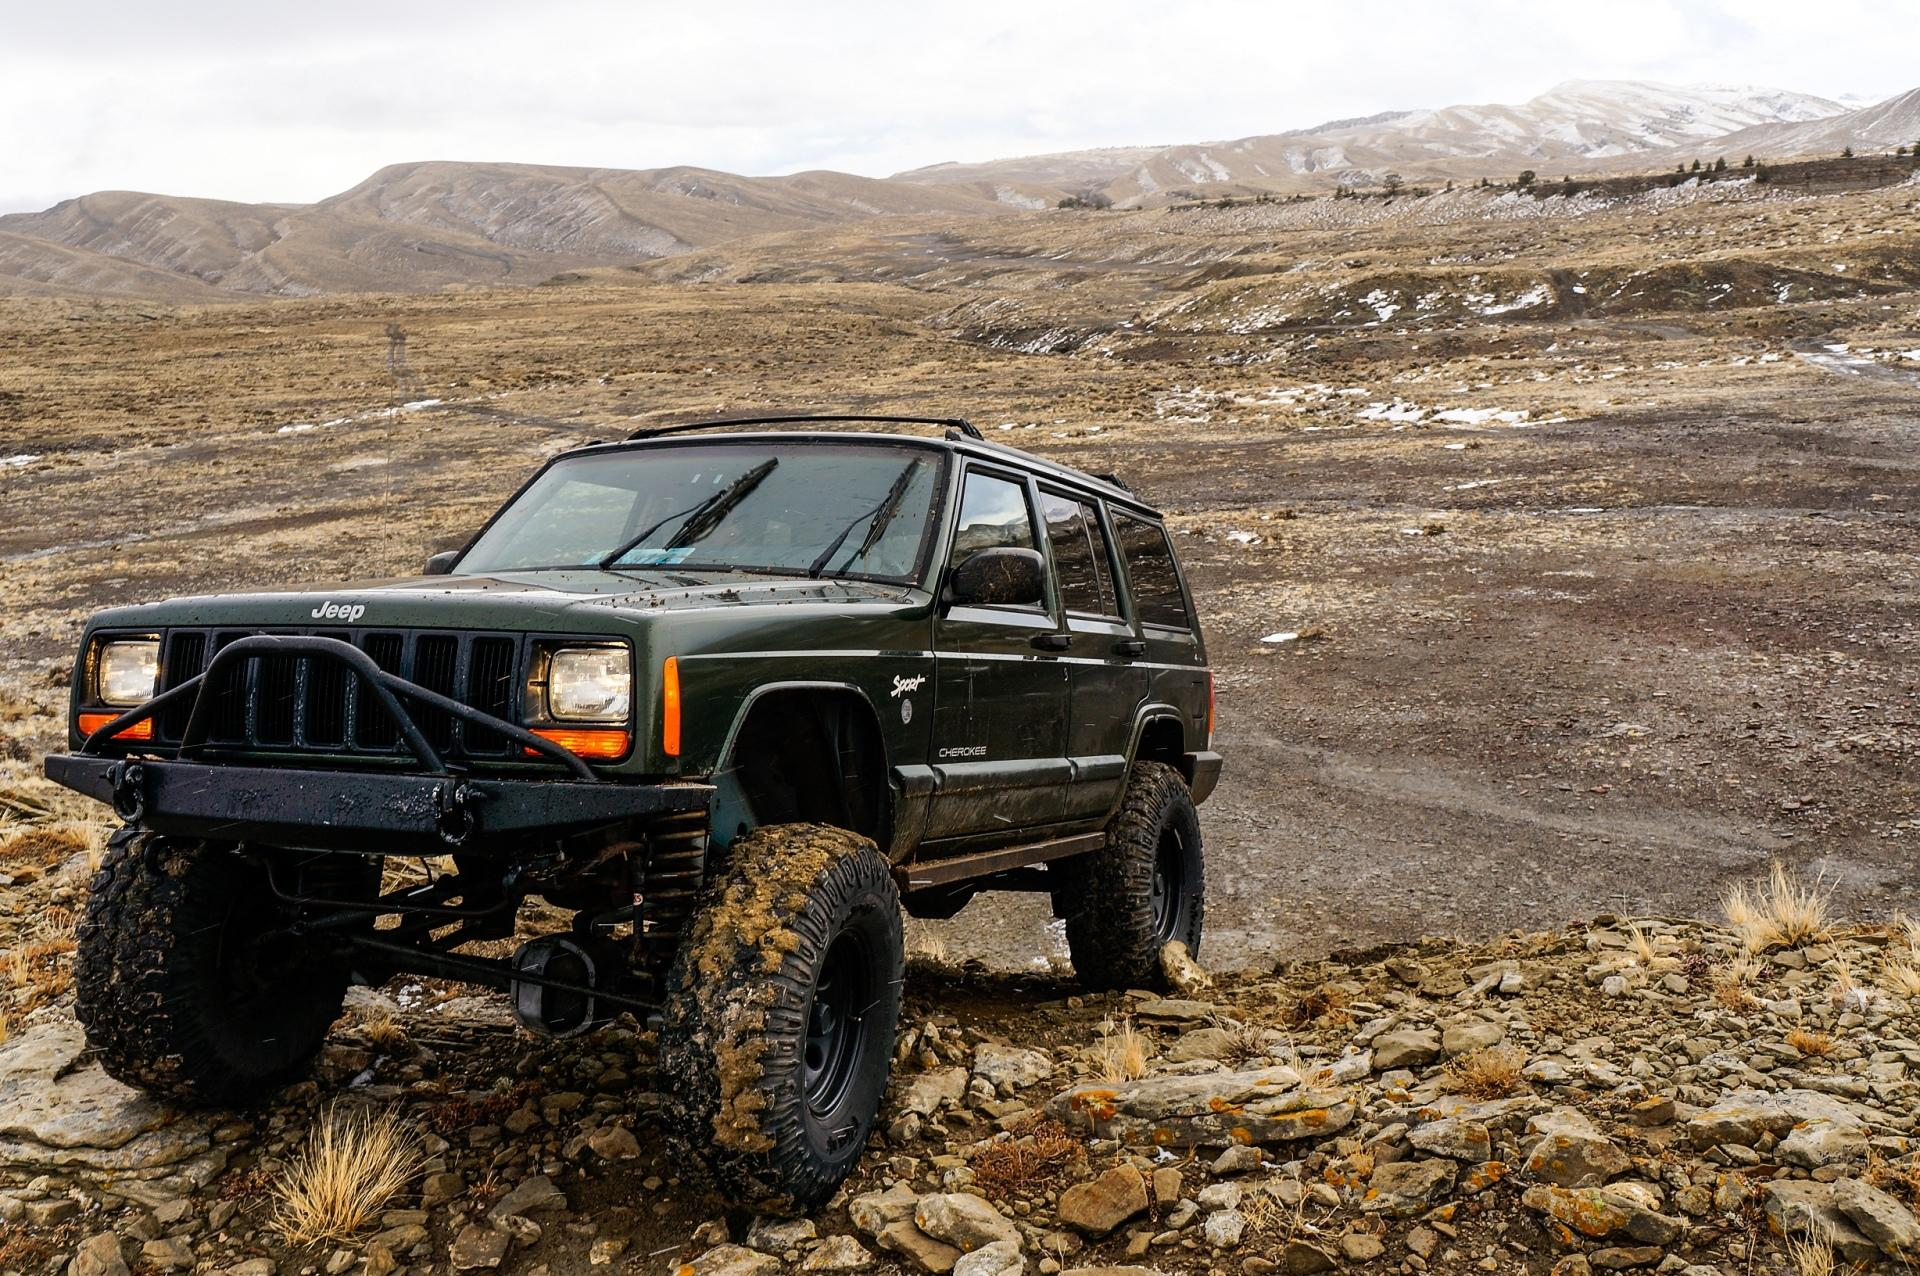 Jeep Cherokee wallpapers HD quality